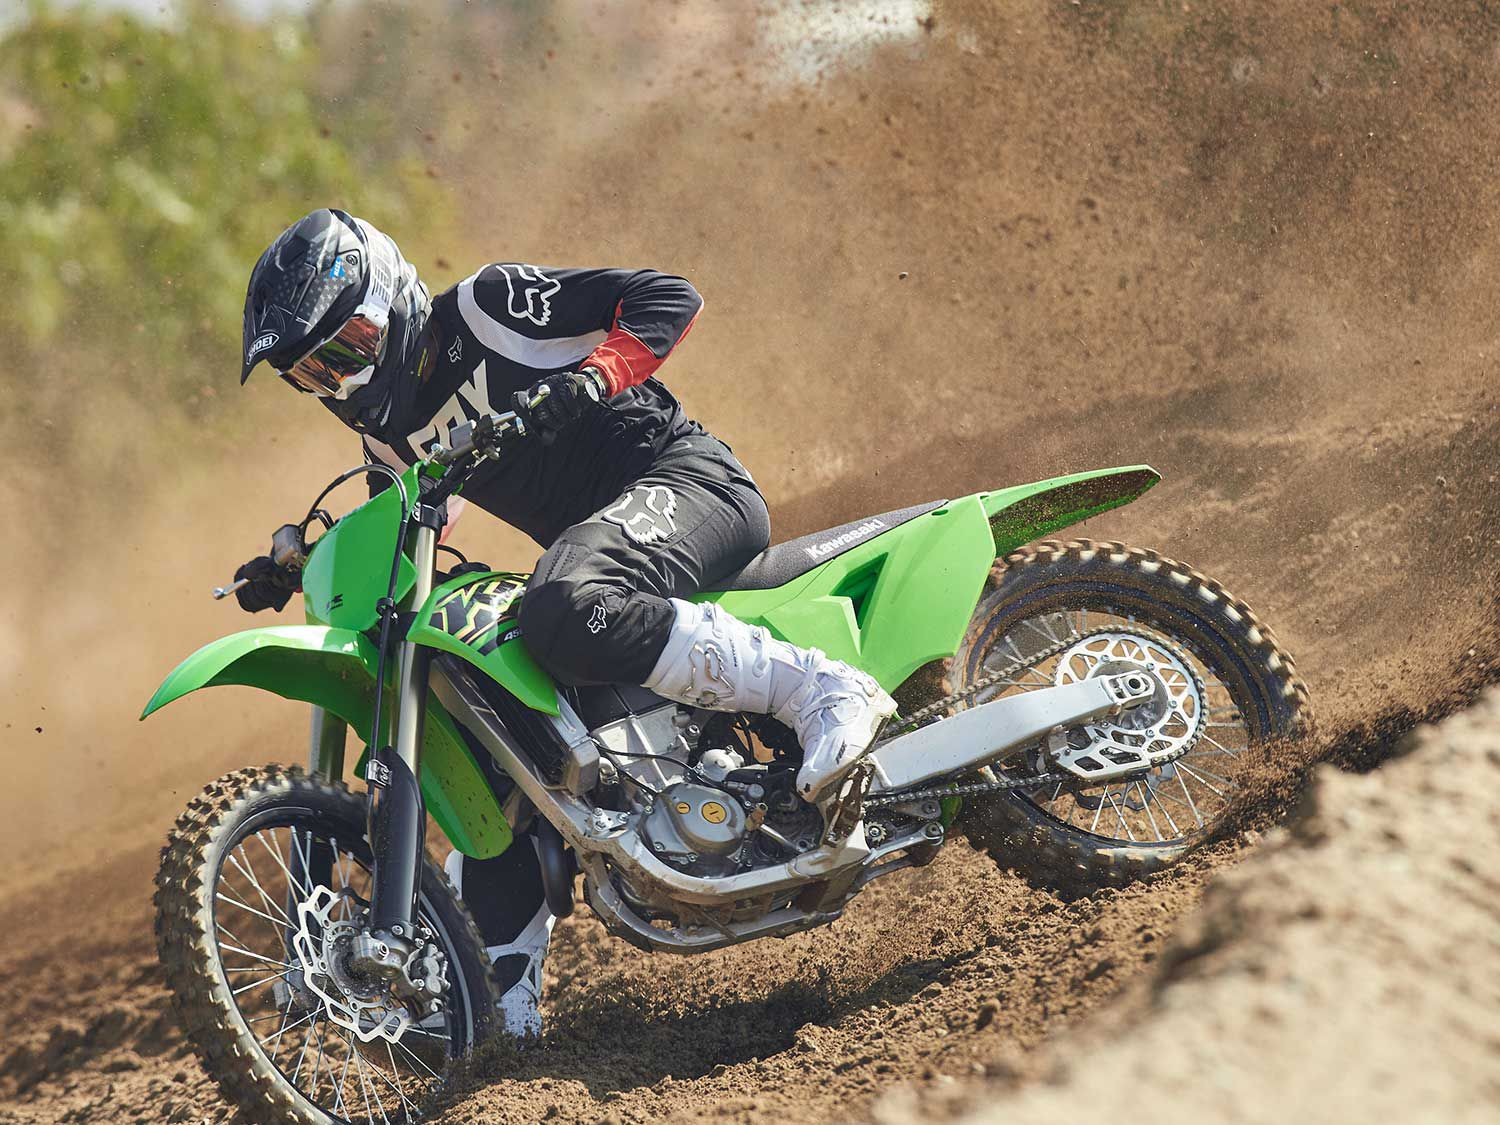 The KX450's frame has an excellent rigidity balance. Its compliancy enables it to help the suspension absorb impacts, yet it's firm enough to allow for precise handling.